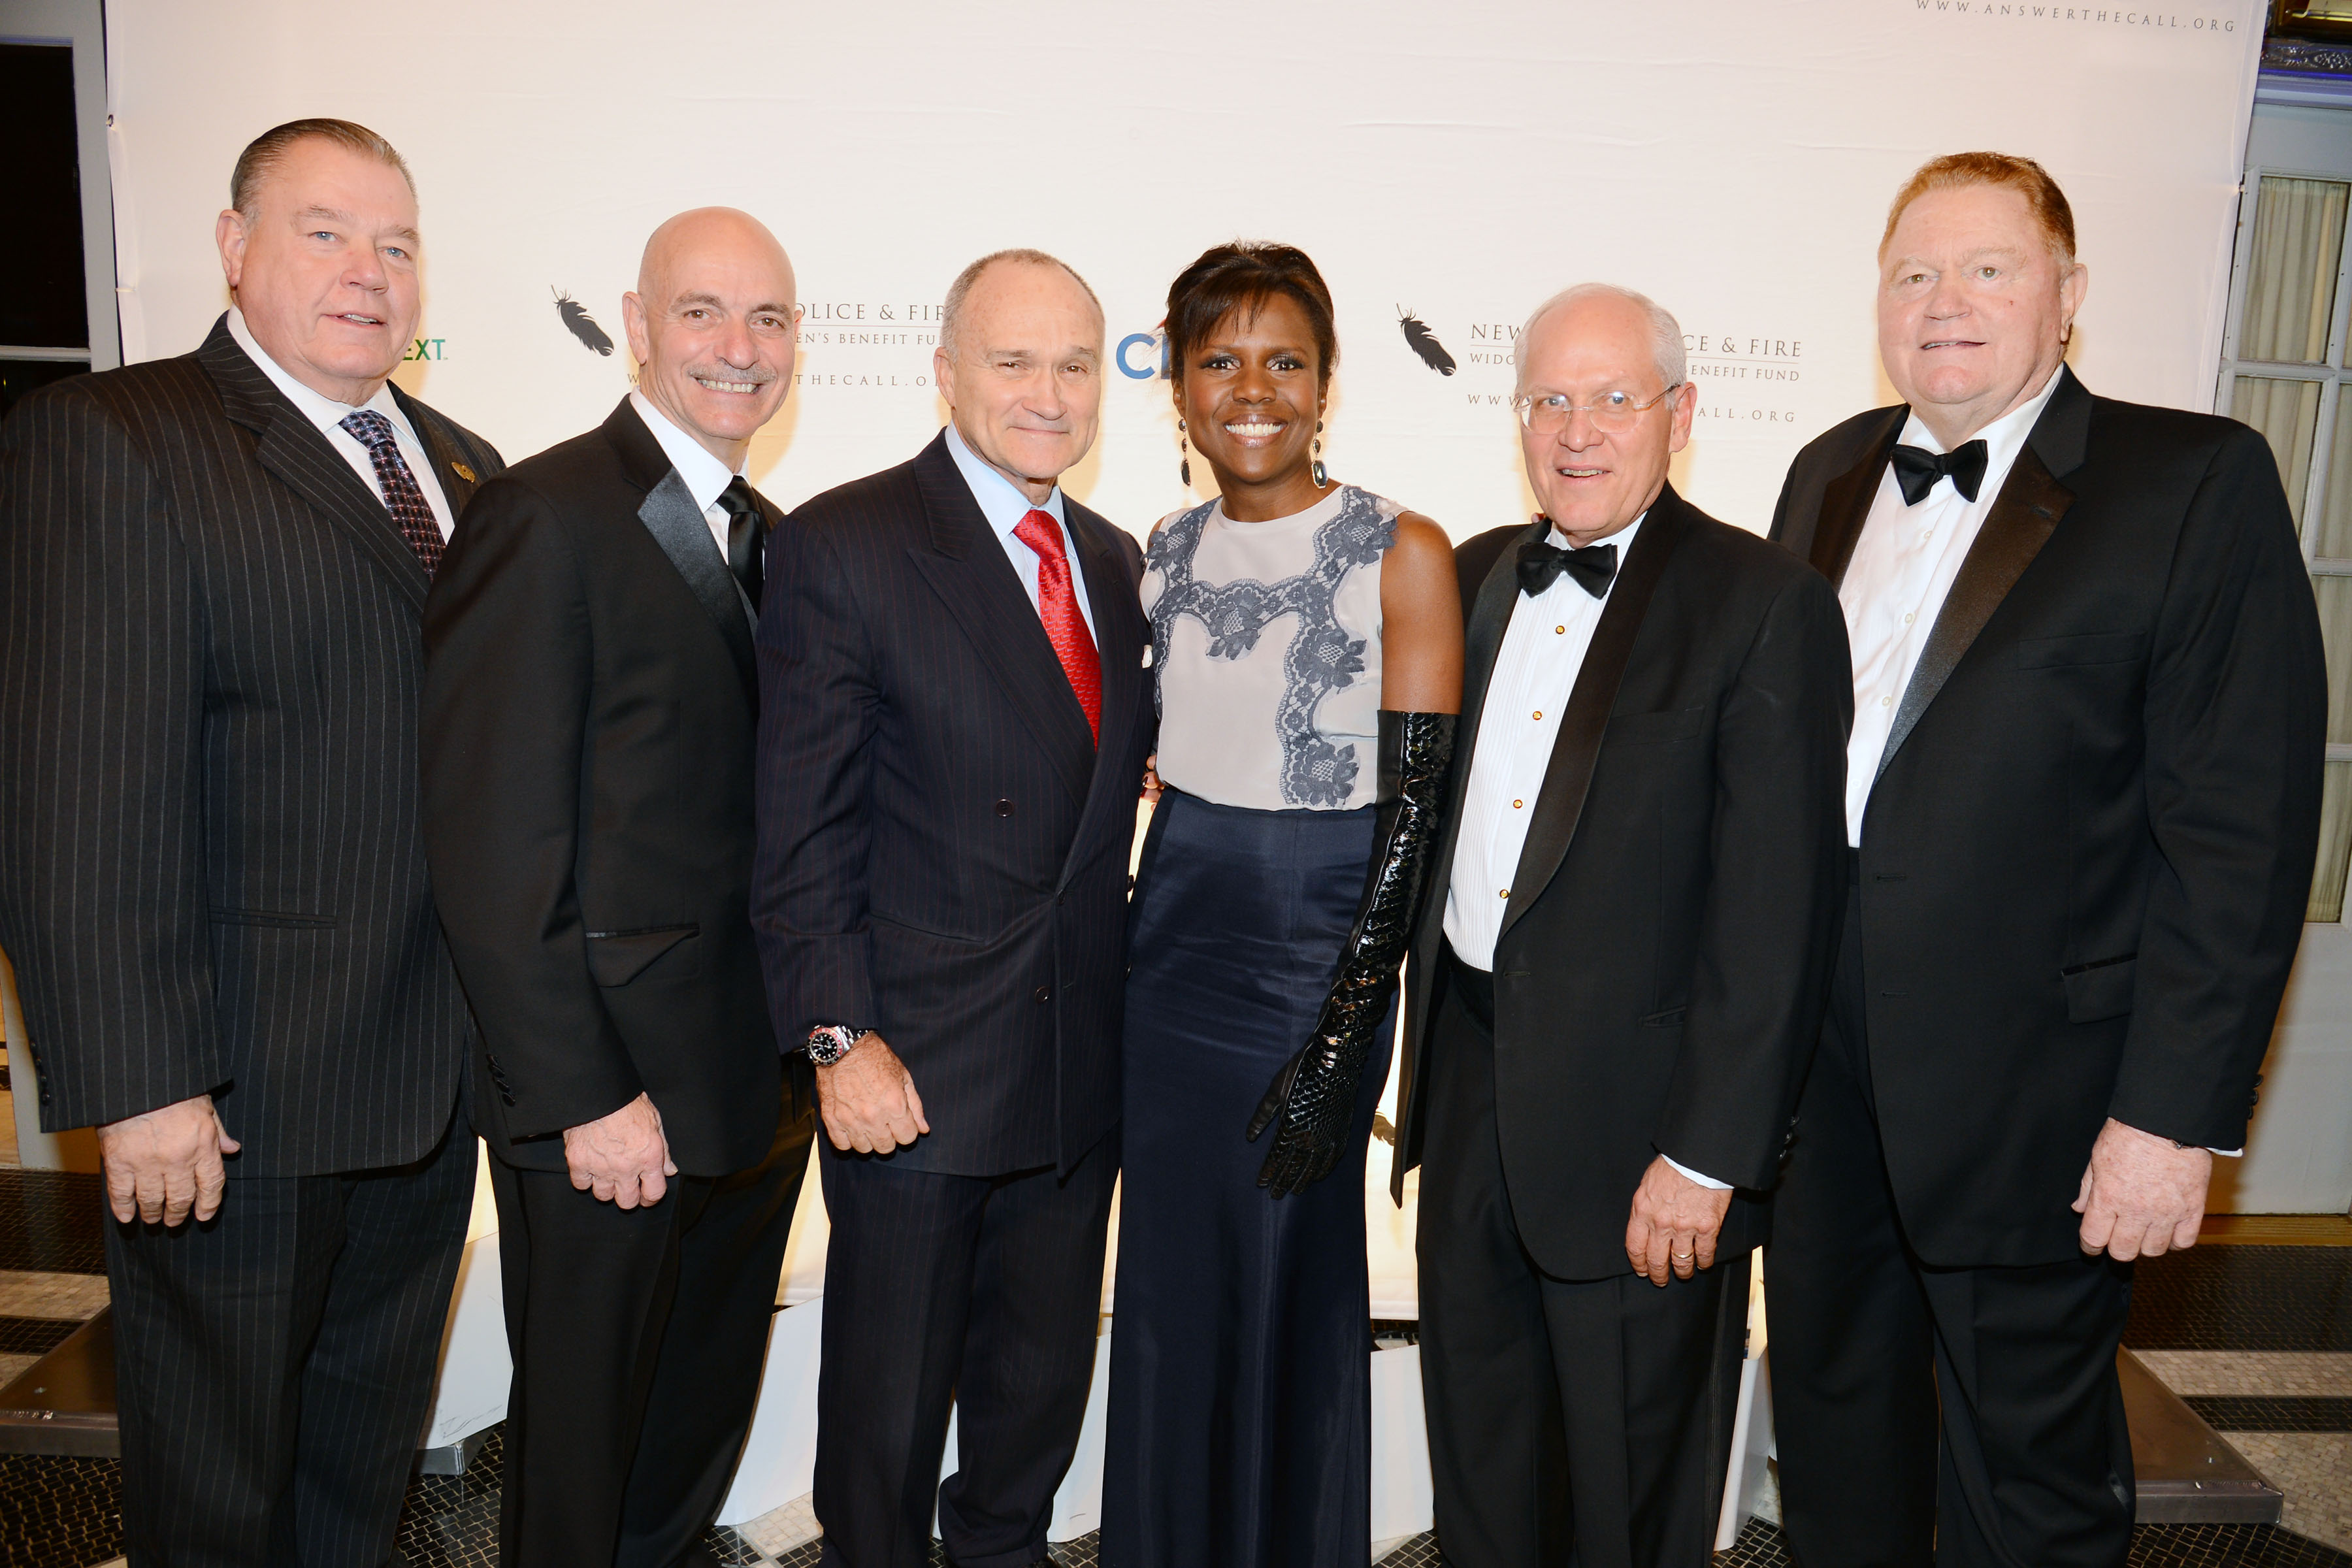 28th Annual Gala of New York Police & Fire Widows' & Children's Benefit Fund